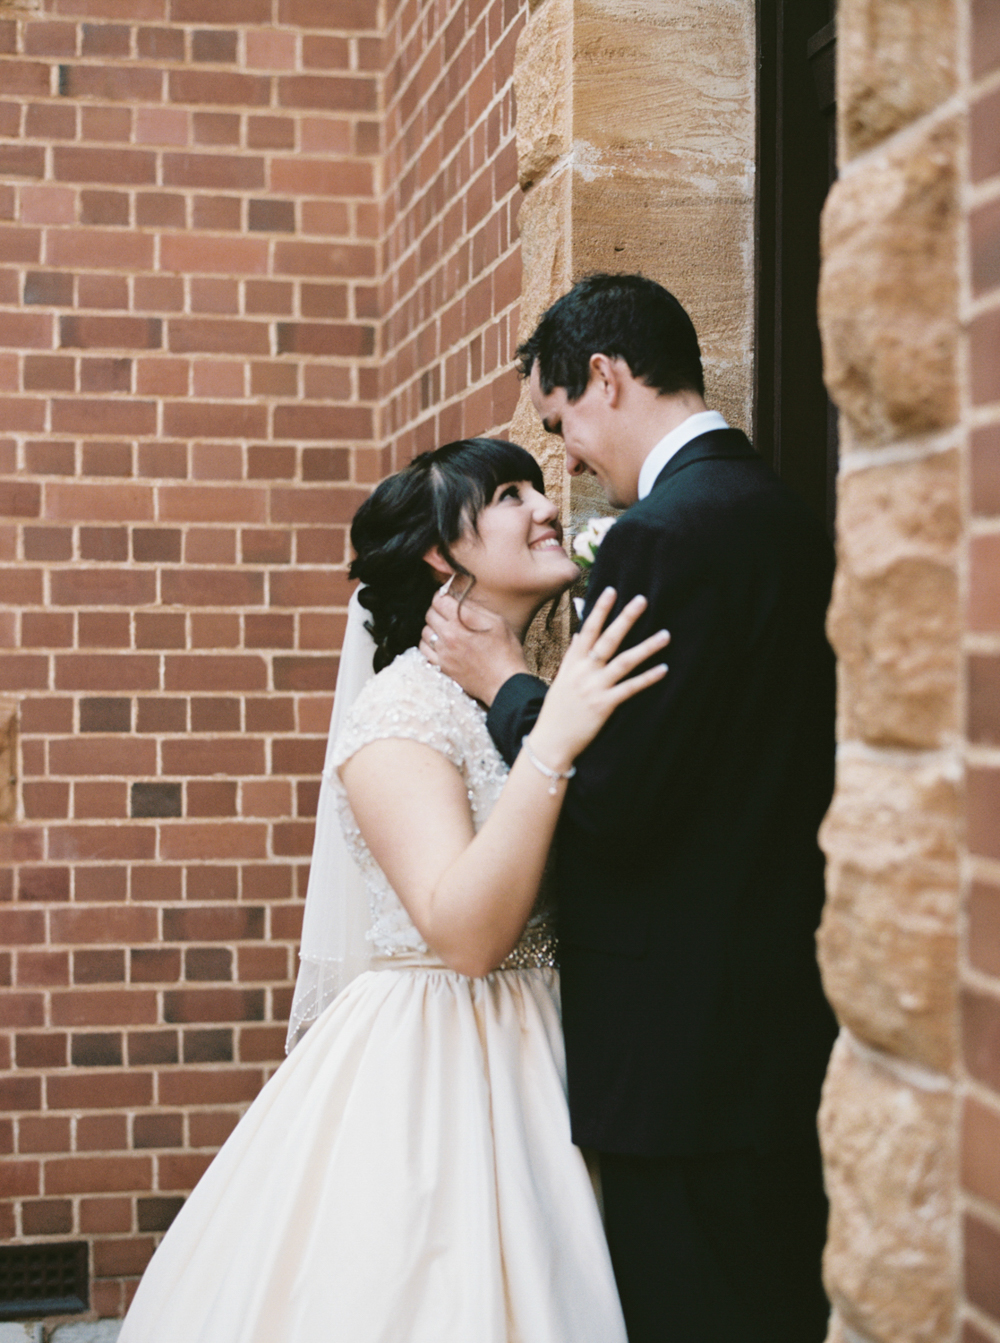 00043- Dubbo NSW Wedding Photographer Sheri McMahon.jpg